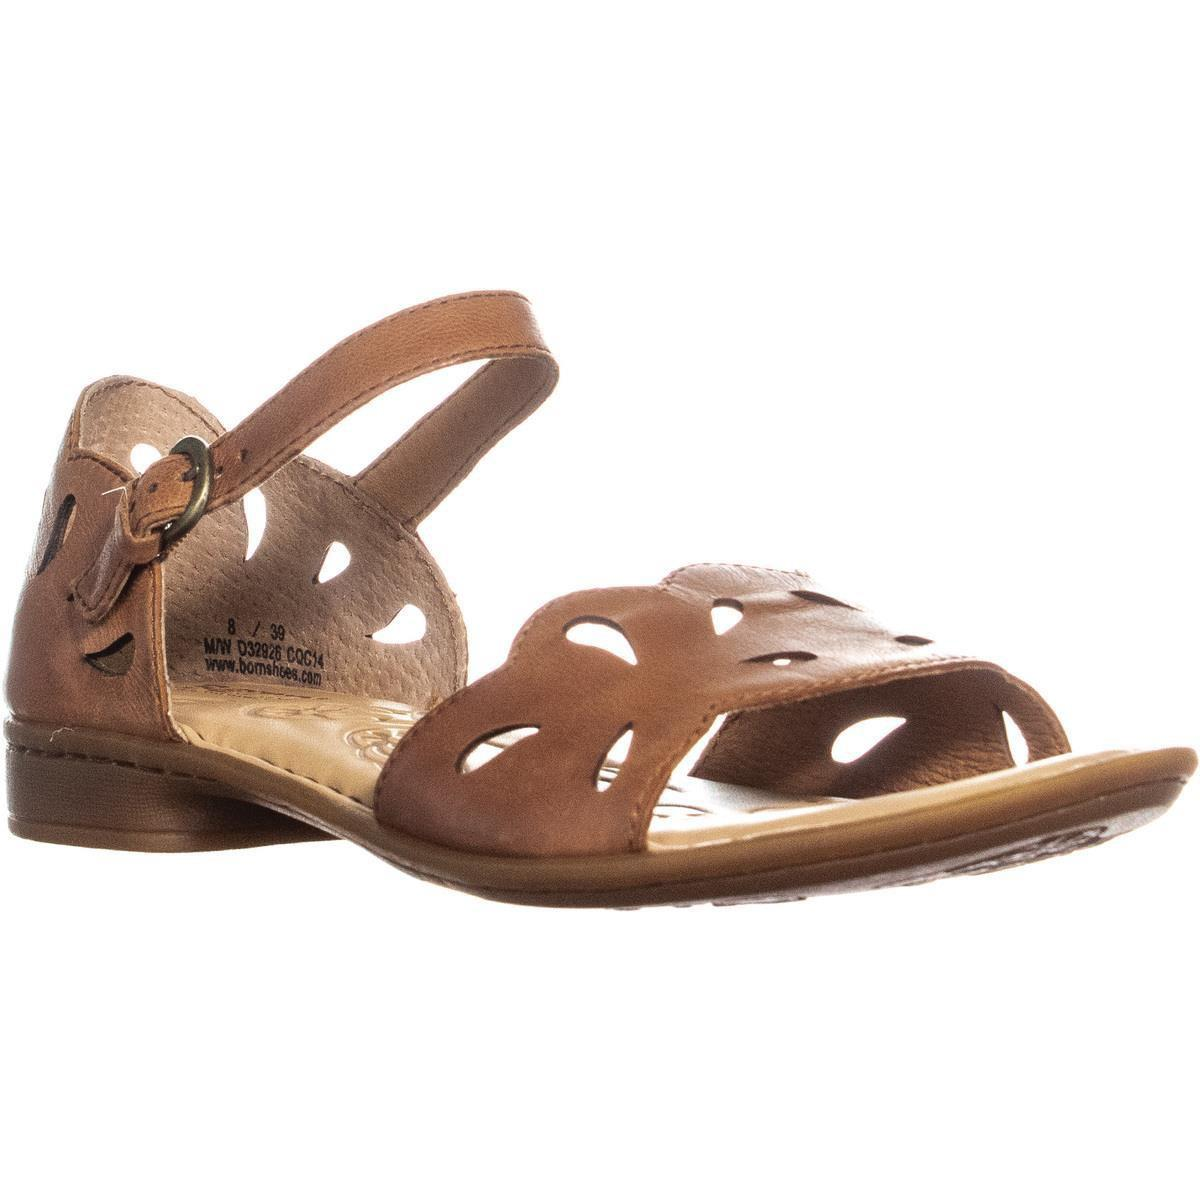 458ff1de4943 Lyst - Born Janya Cut-out Flat Sandals in Brown